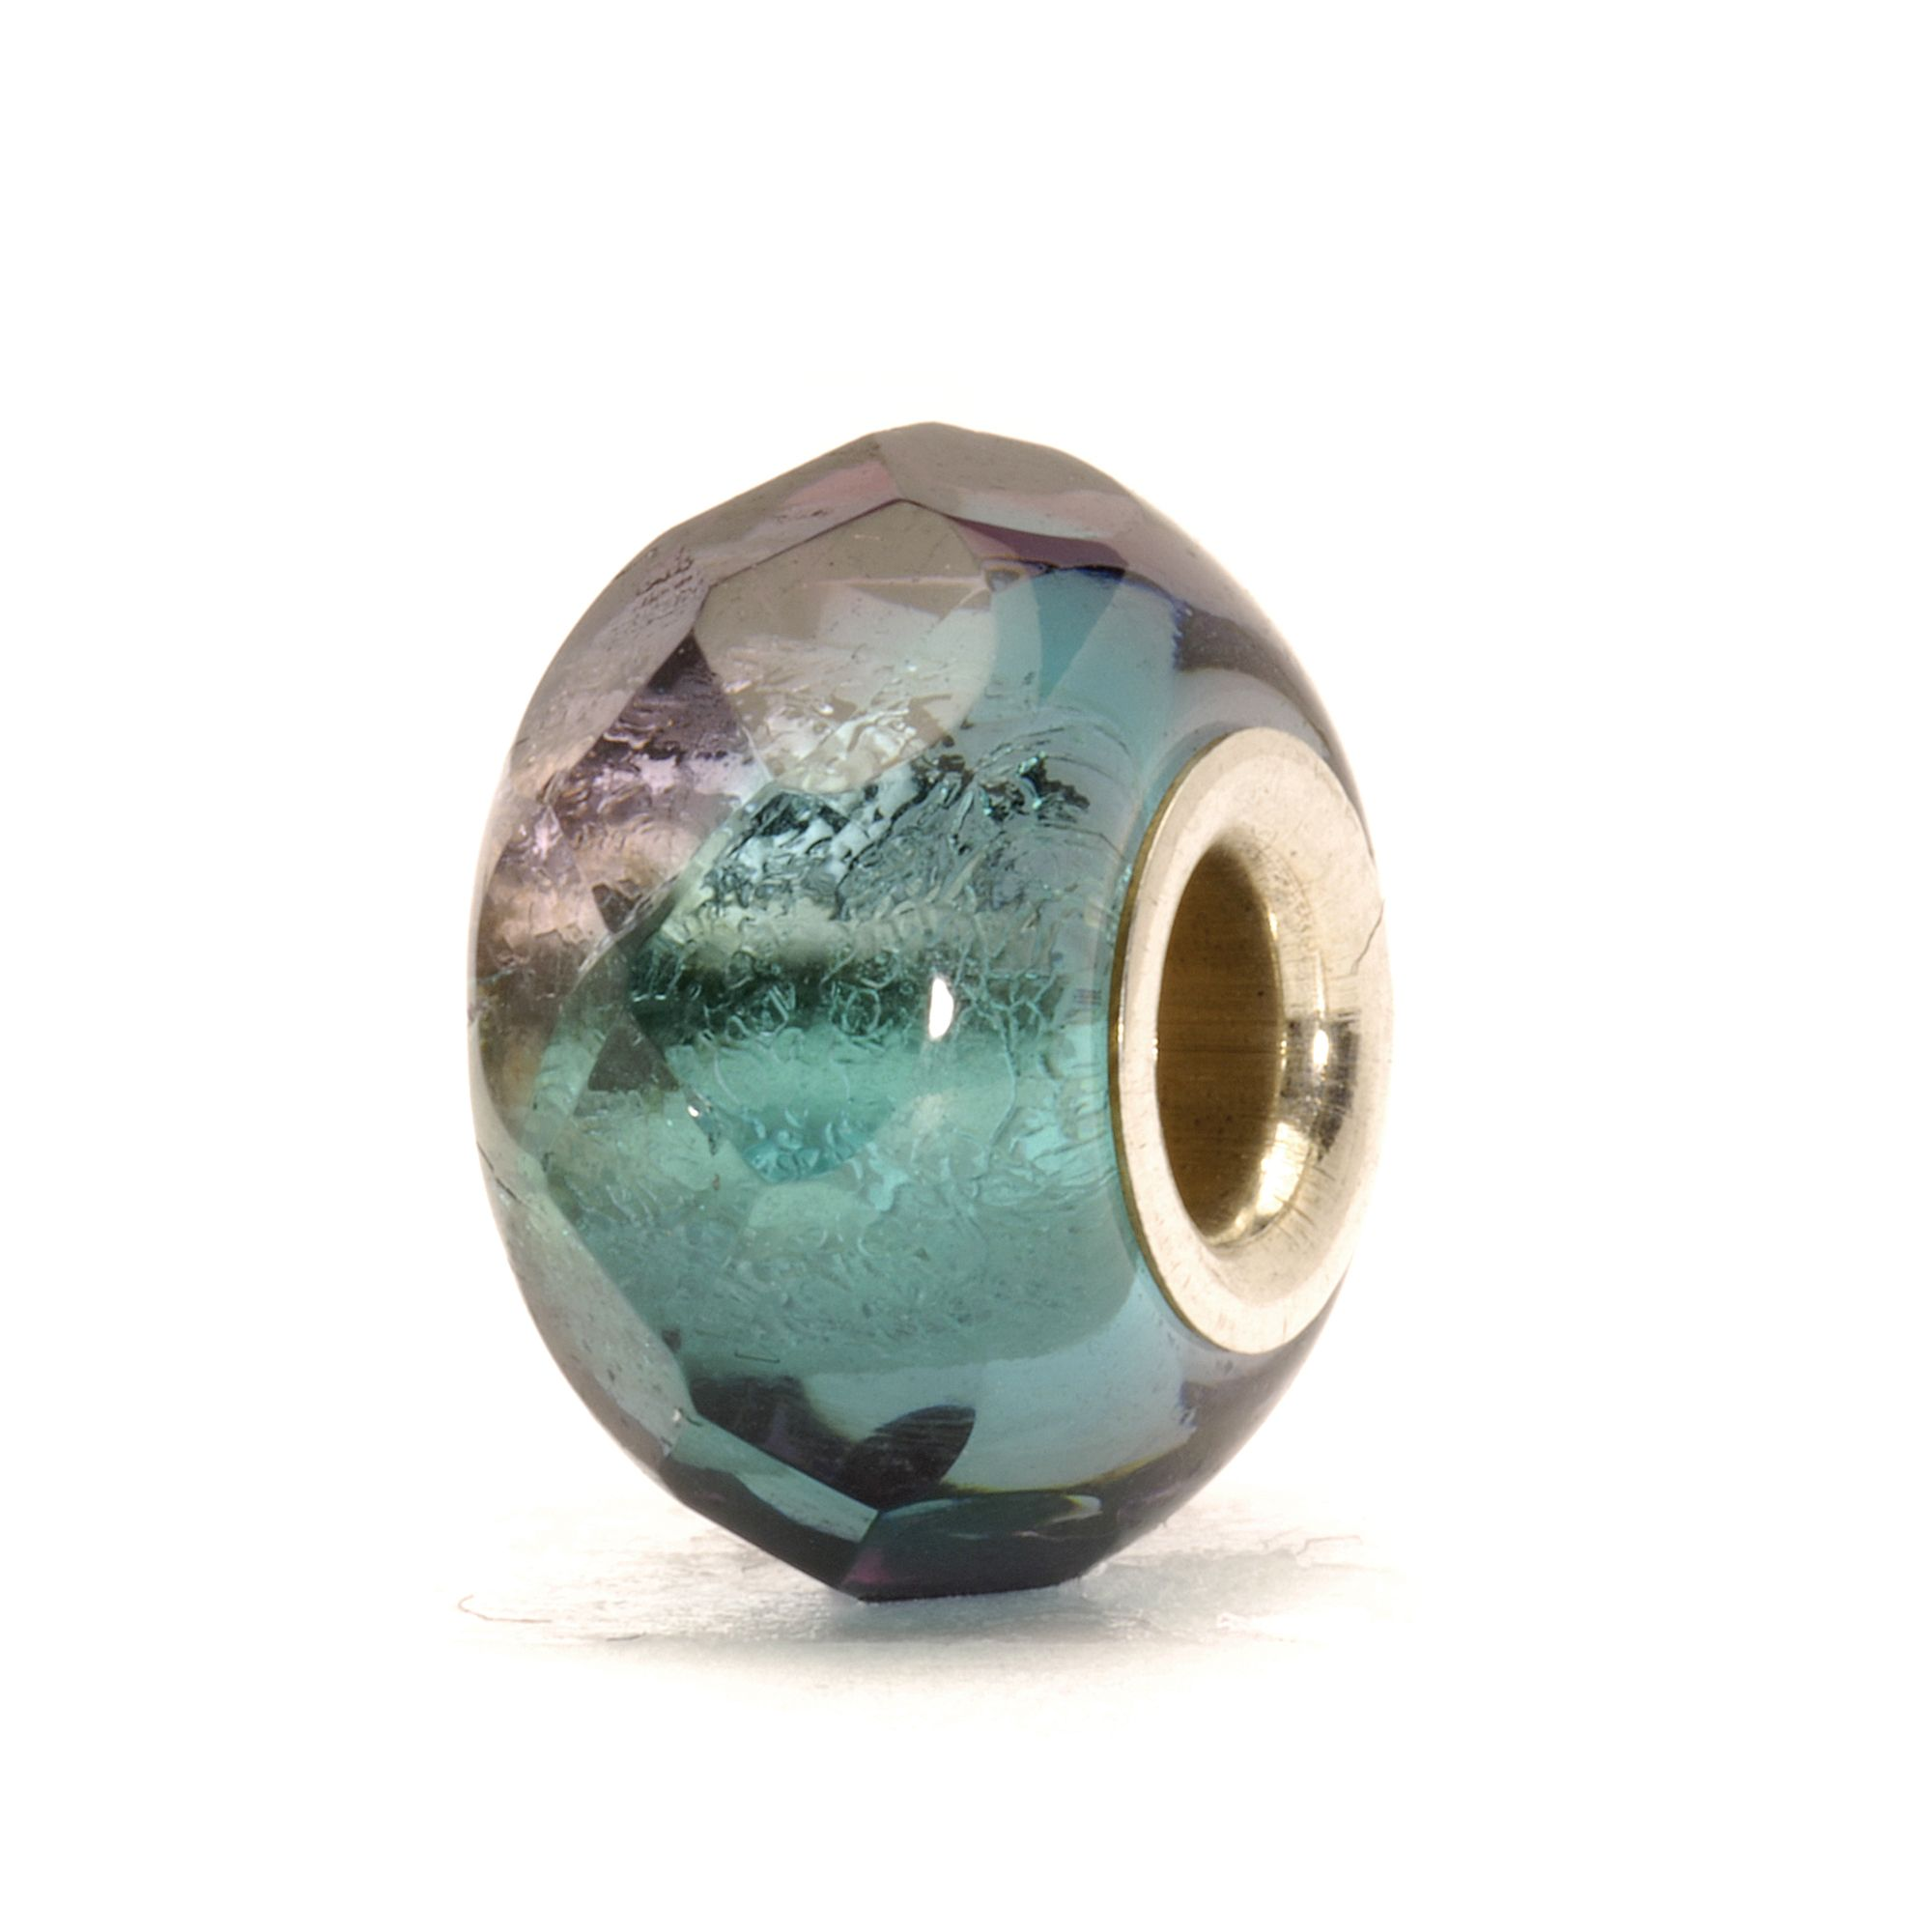 Prism glass charm bead